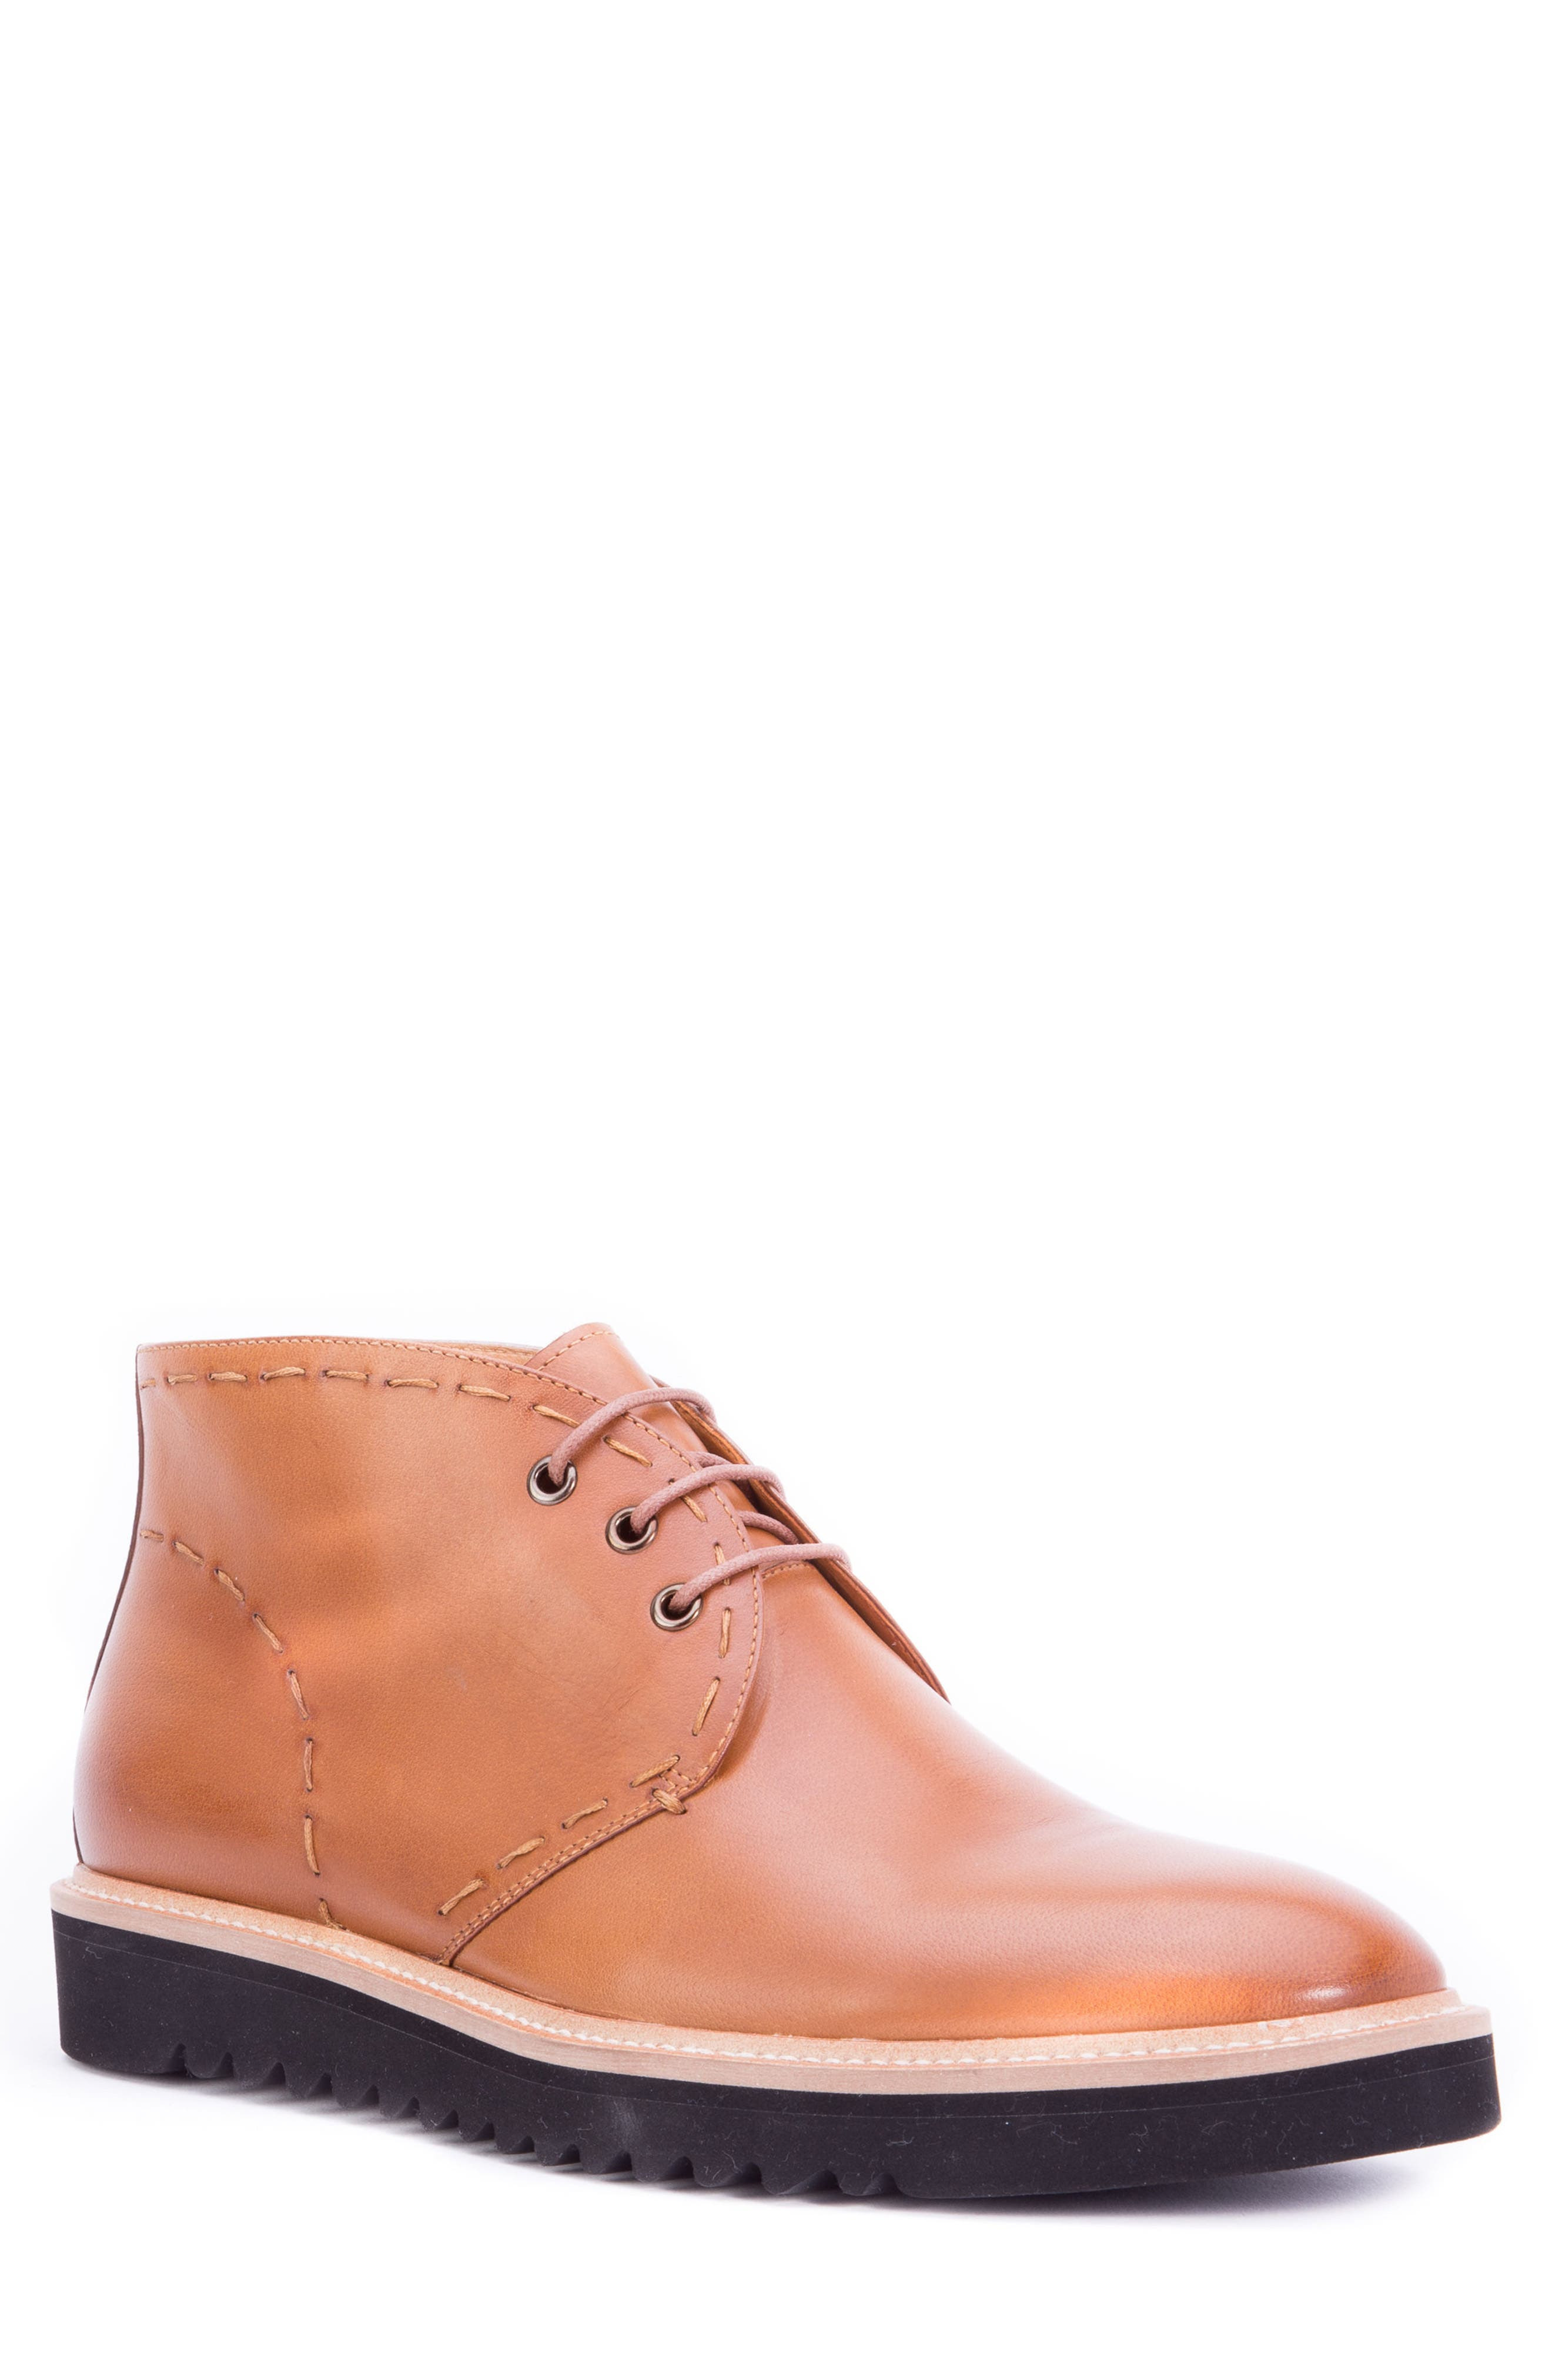 Lombardo Chukka Boot,                             Main thumbnail 1, color,                             COGNAC LEATHER